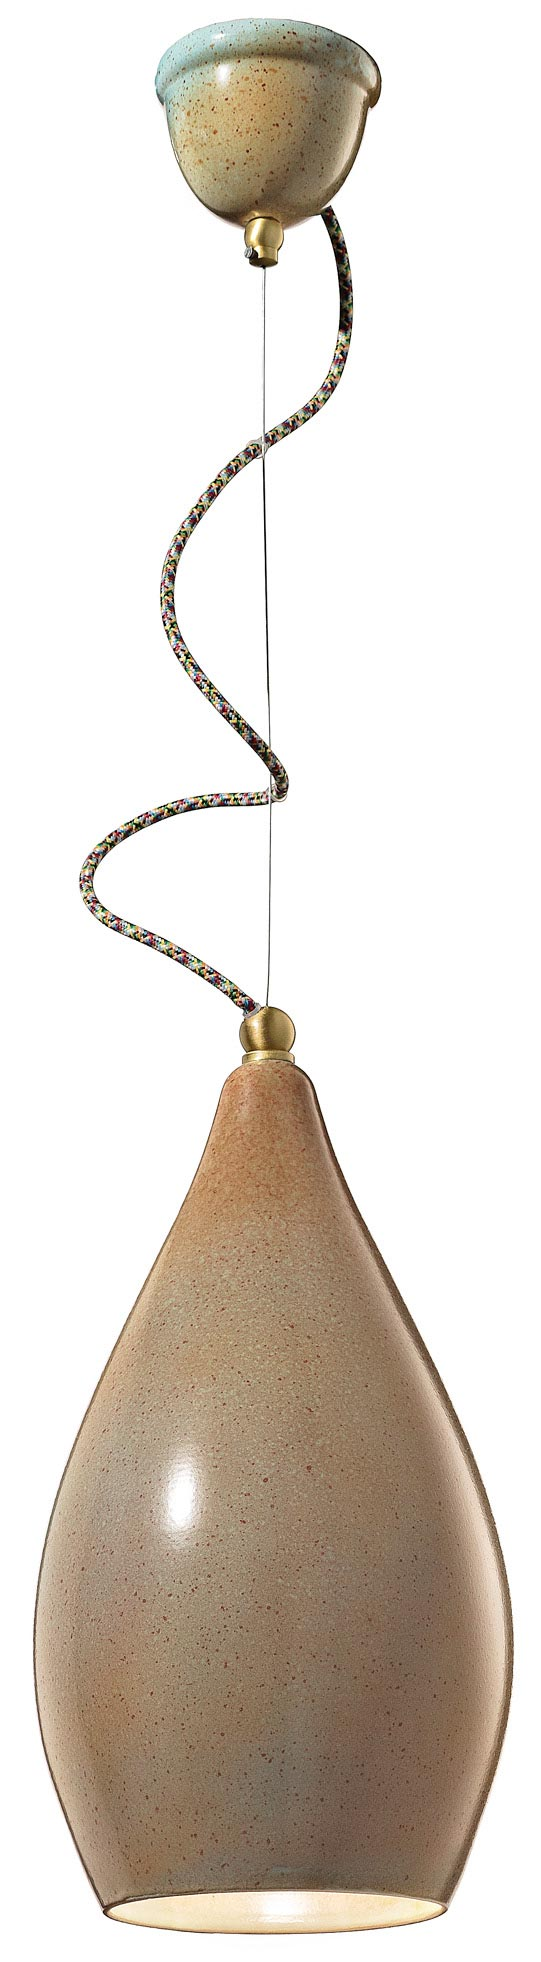 Vague C1412 suspension beige. Ferroluce.